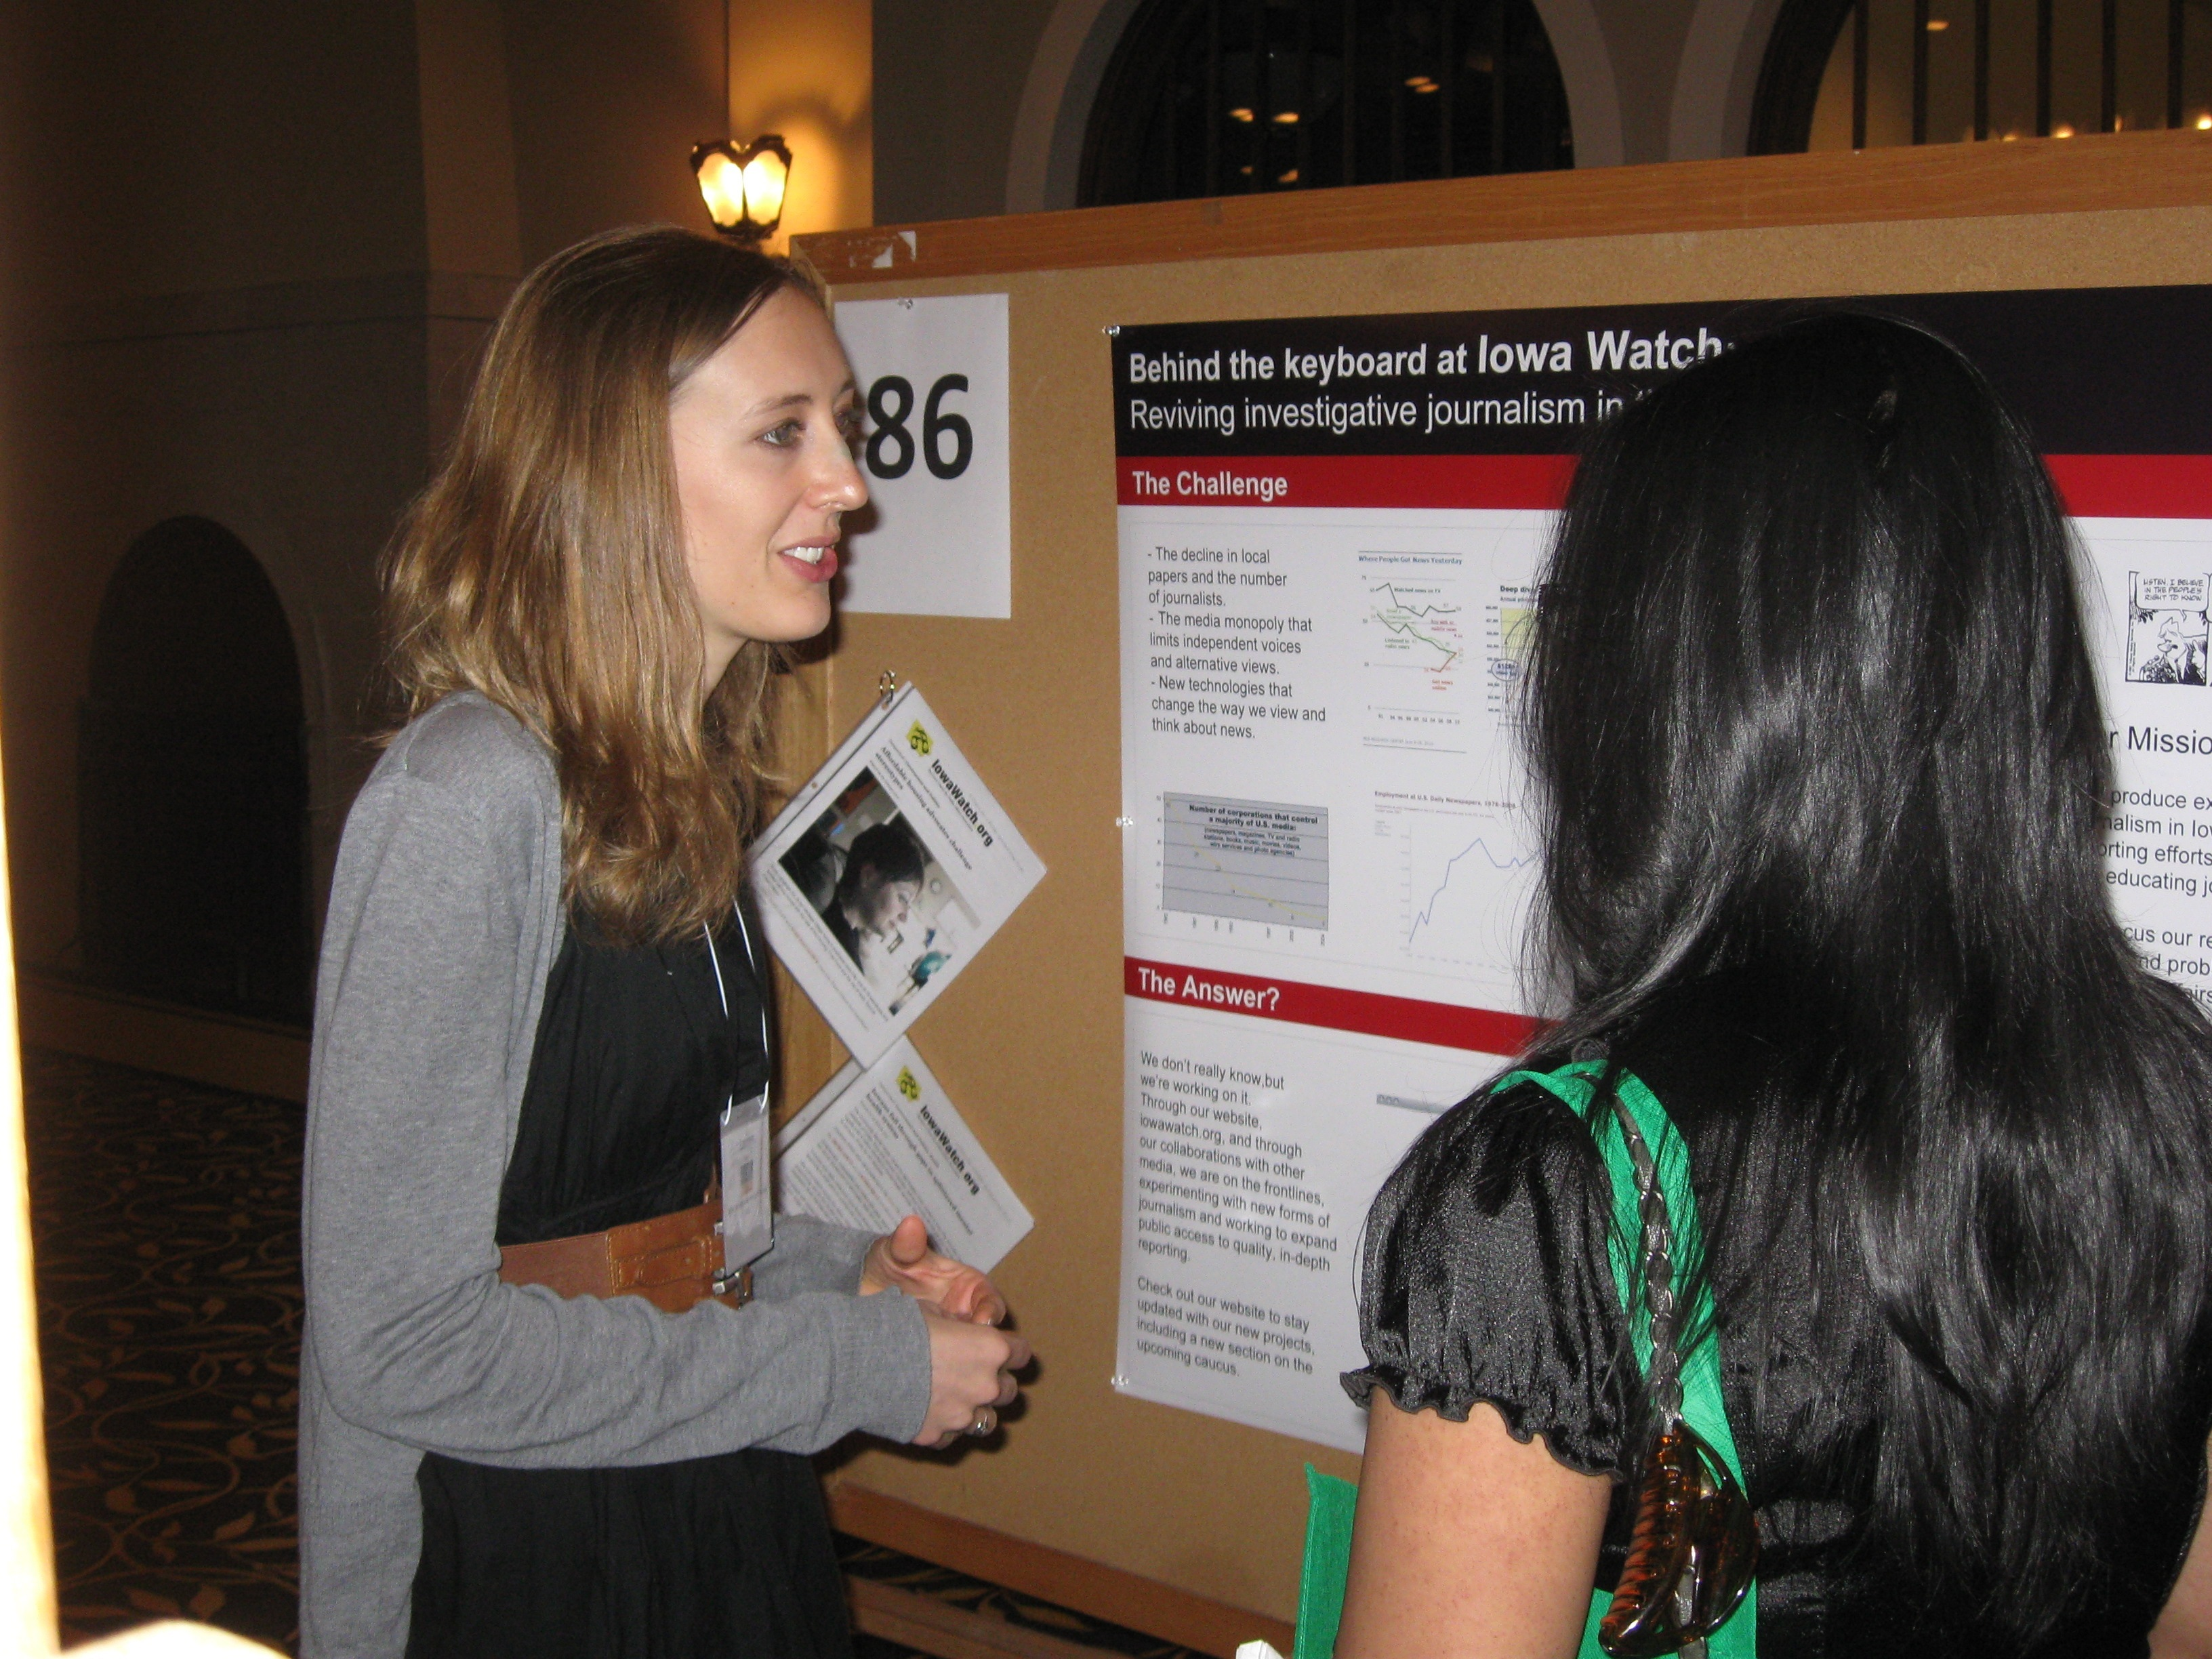 Lauren Mills discusses her Iowa Watch posters with one of a festival judge. Source: Cheryl C. Berry